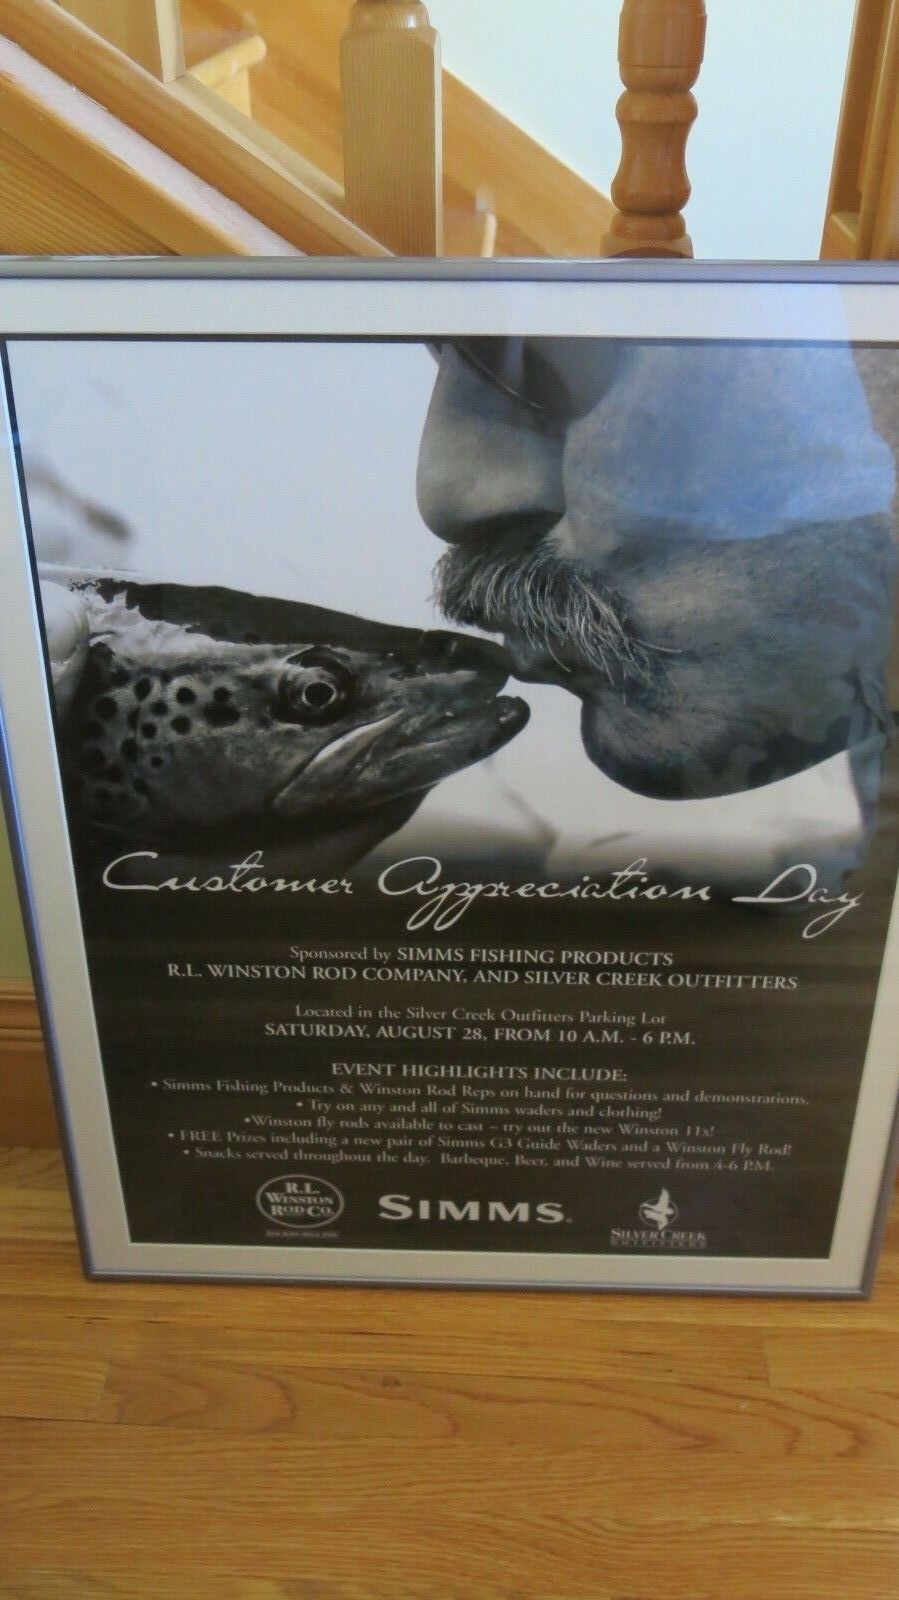 RARE Simms Fishing Products Framed Event Poster